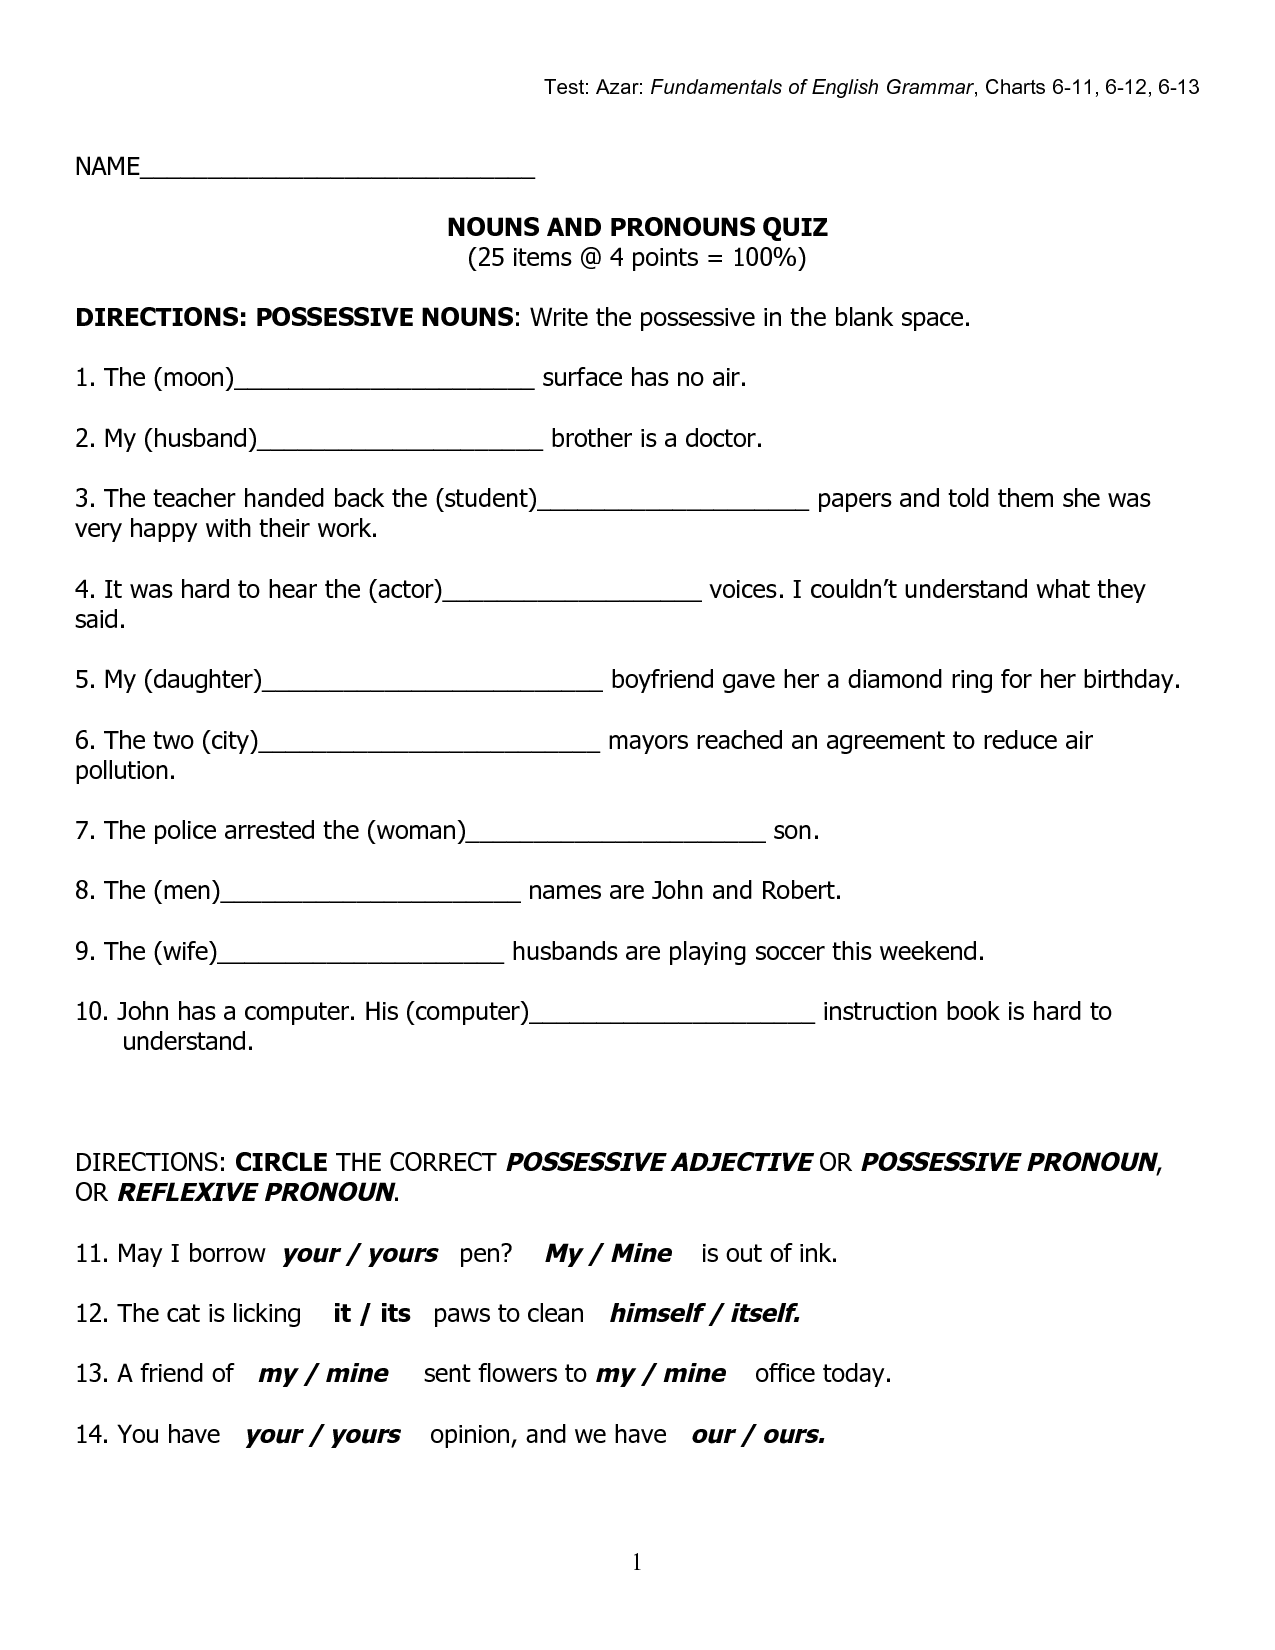 Possessive Pronouns Worksheet Spanish